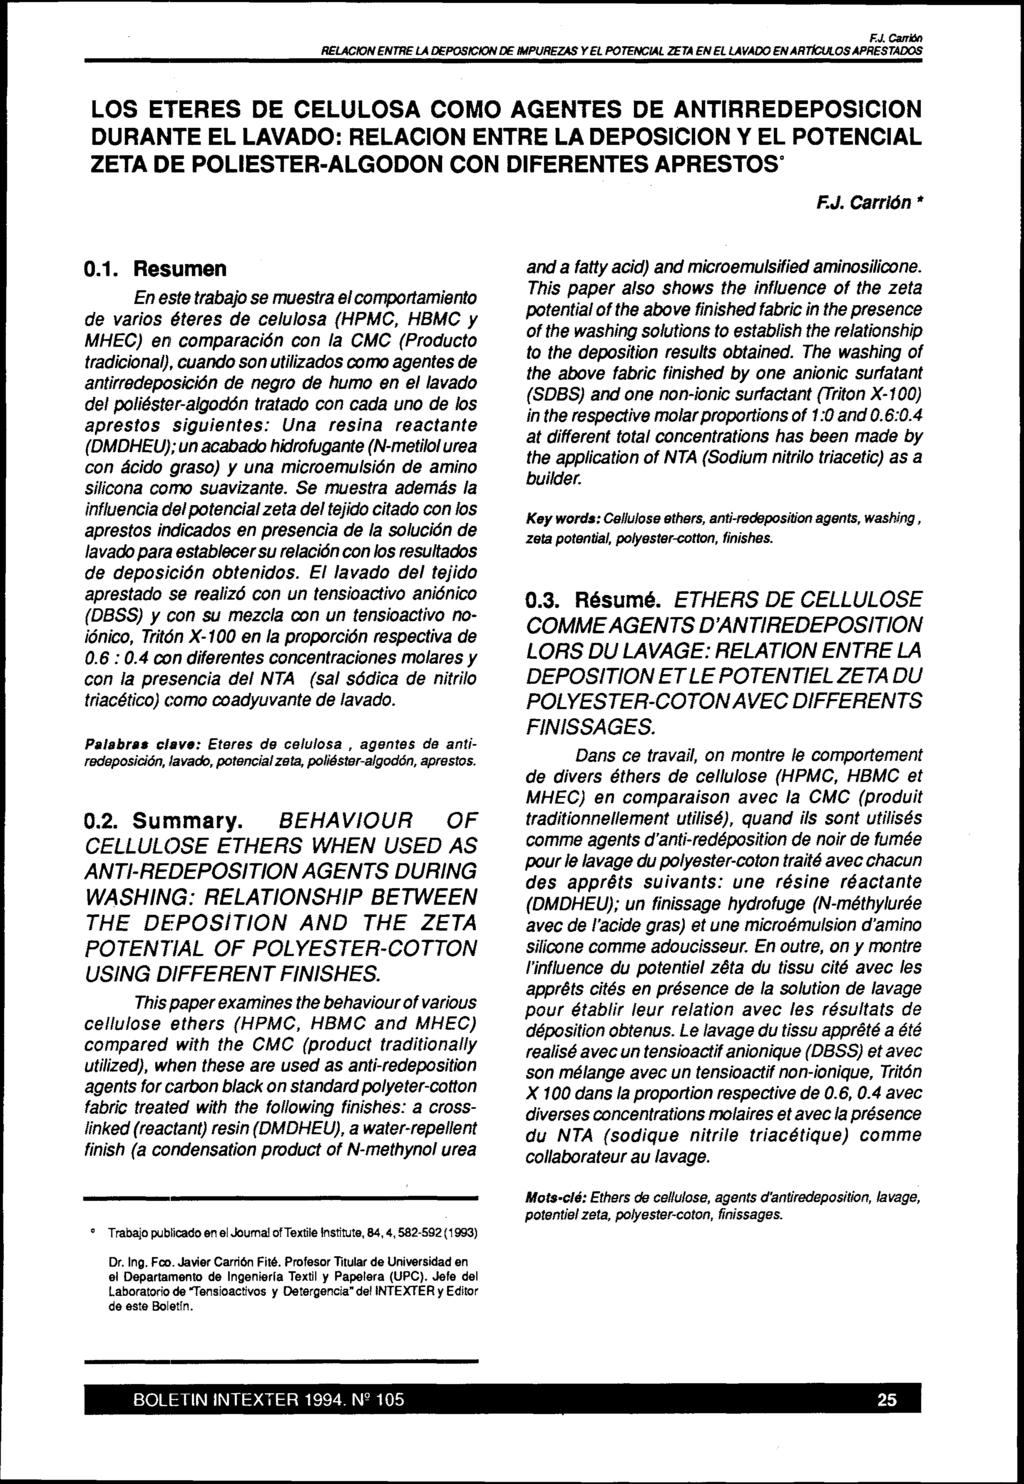 0.1. Resumen. Key words: Cellulose ethers, anti-redeposition agents ...